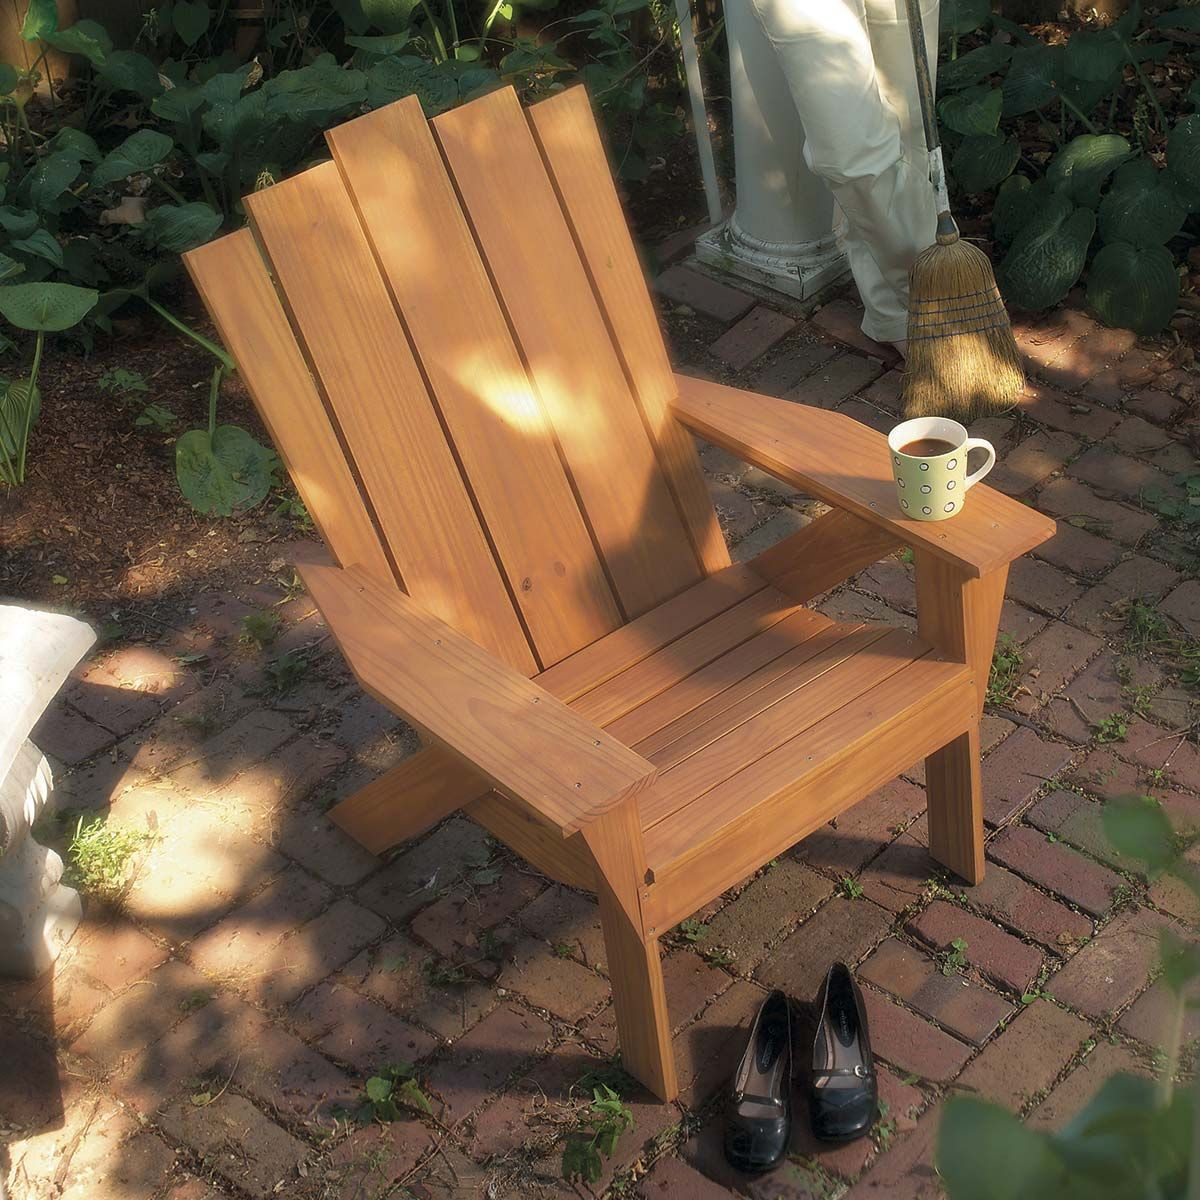 40 Outdoor Woodworking Projects For Beginners Woodenchair Wooden